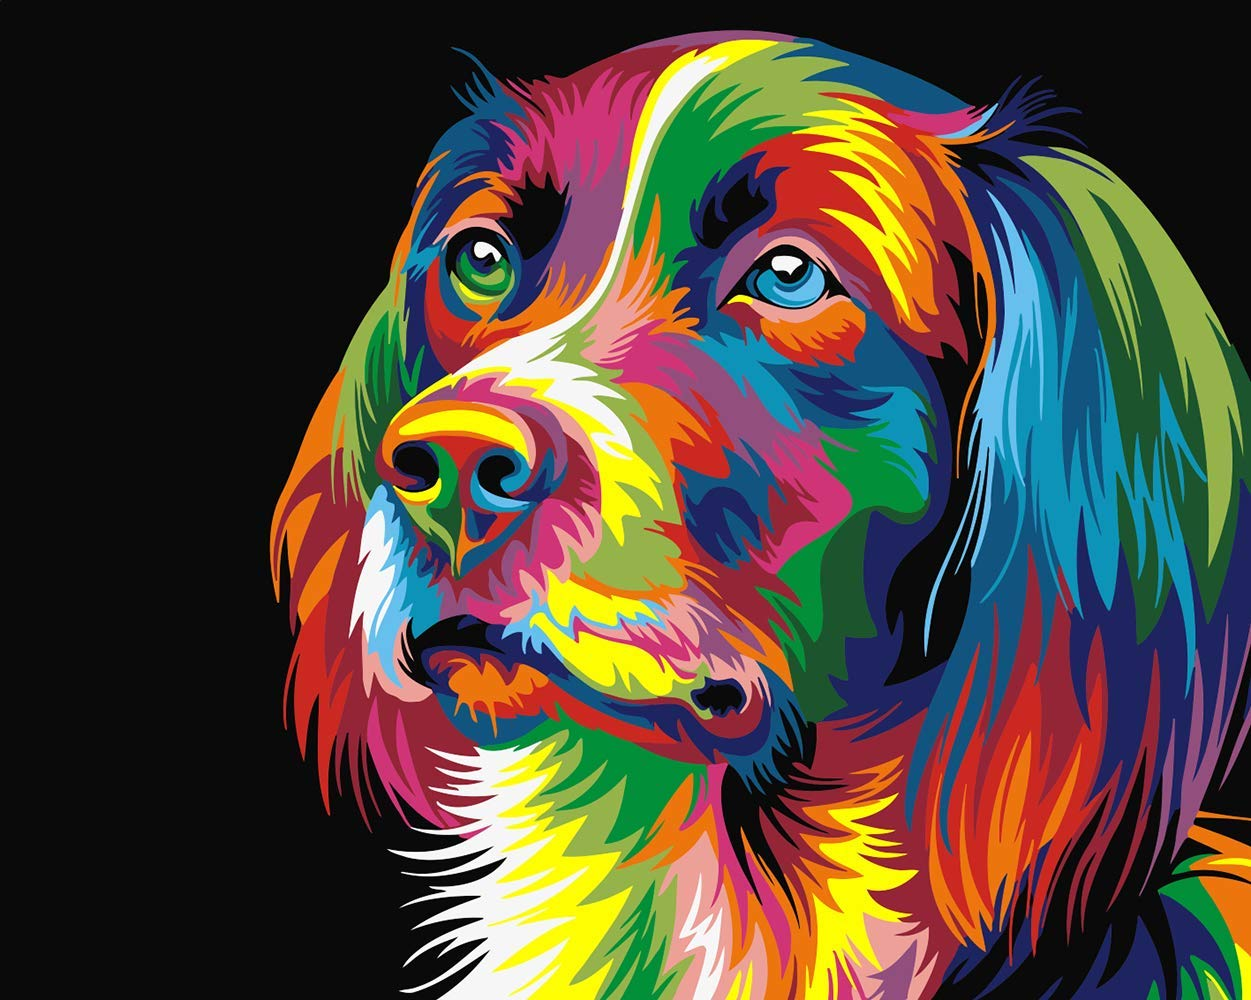 Neon Dog Ehior Paint by Numbers Kits 16x20 inches Canvas Painting for Adults Beginner and Kids with 3X Magnifier Without Frame Acrylic Paints and Brushes